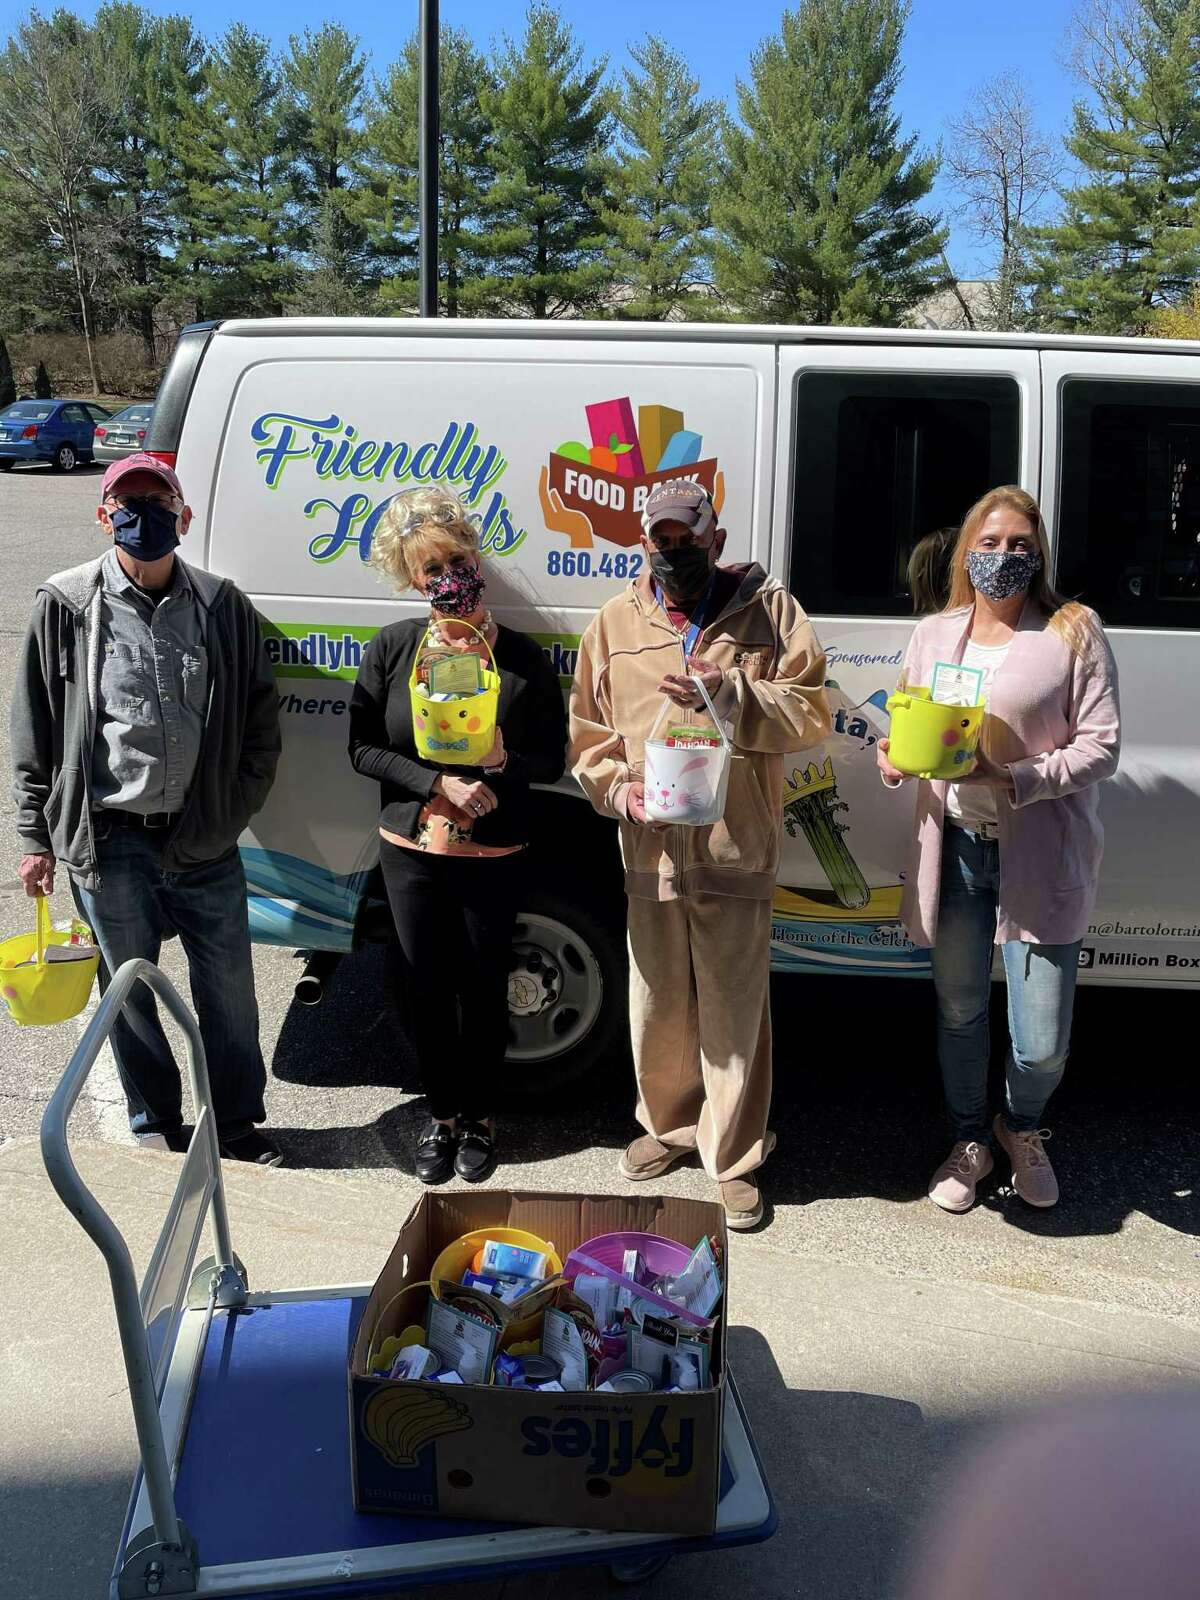 Friendly Hands Food Bank in Torrington brought Easter baskets to senior housing complexes in the city on March 30.